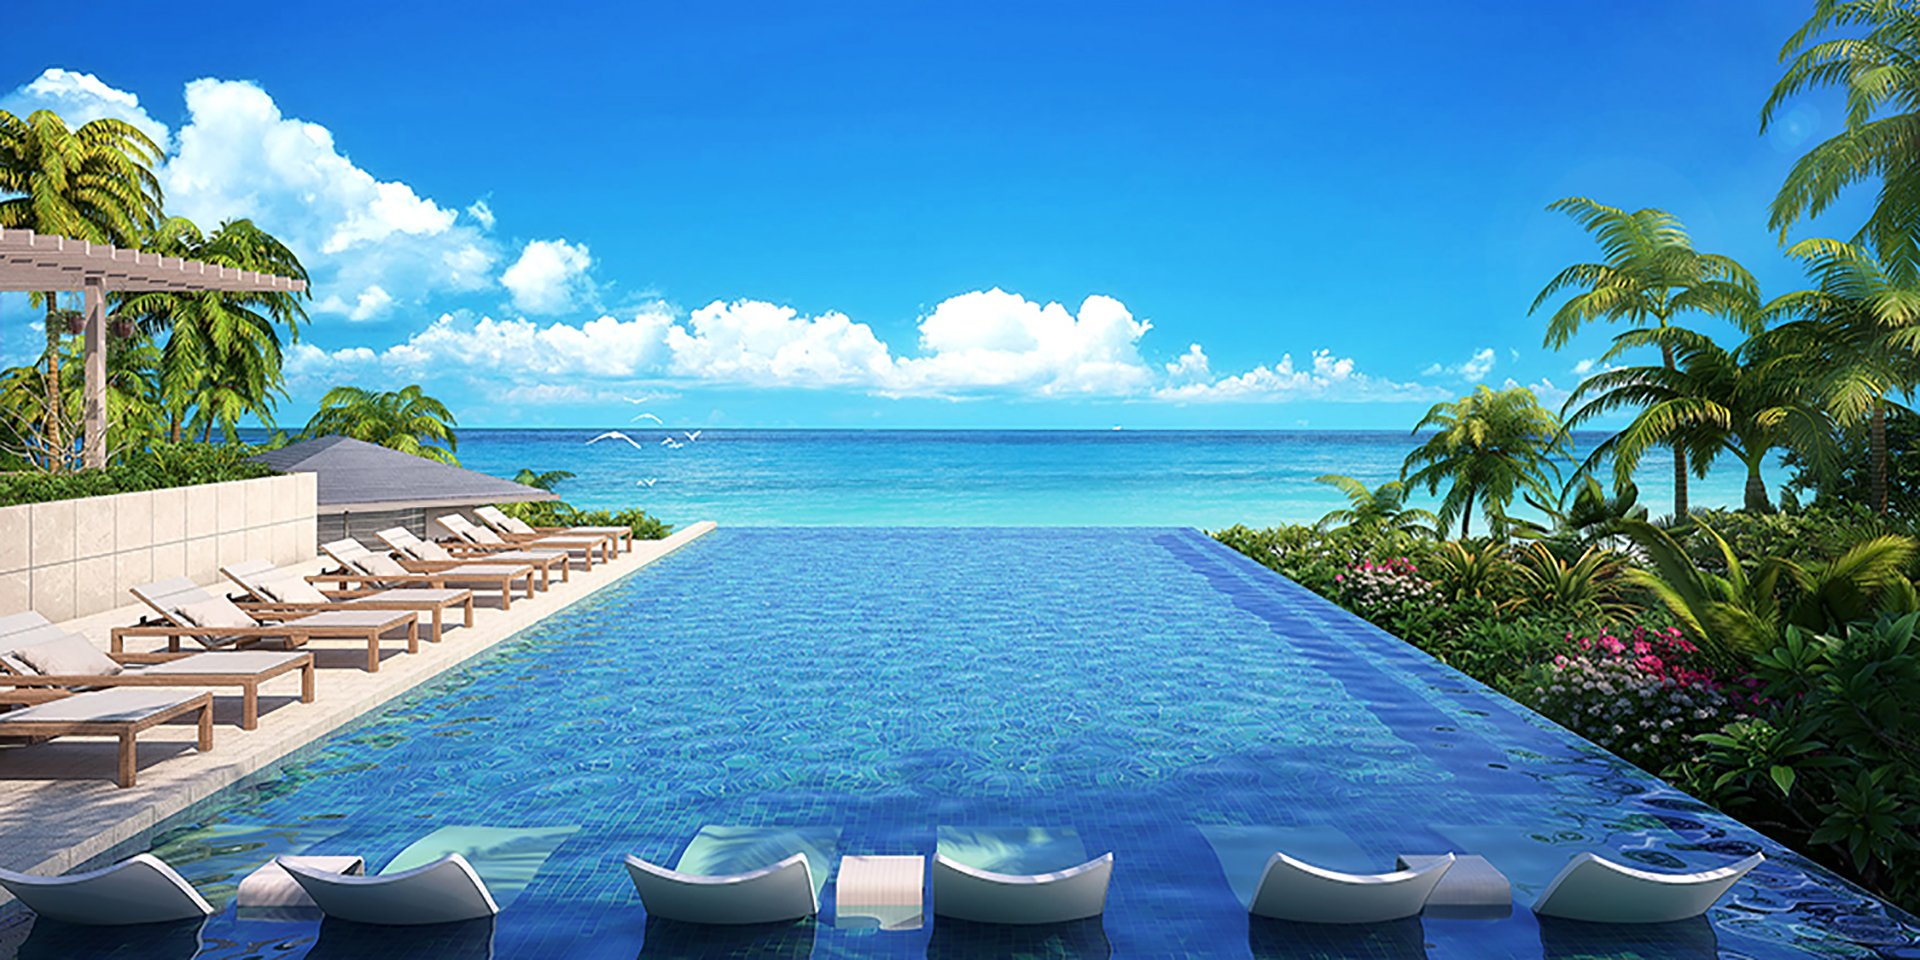 The Luxury Collection To Open Island Resort In Okinawa In 2018 Luxury Travel Advisor